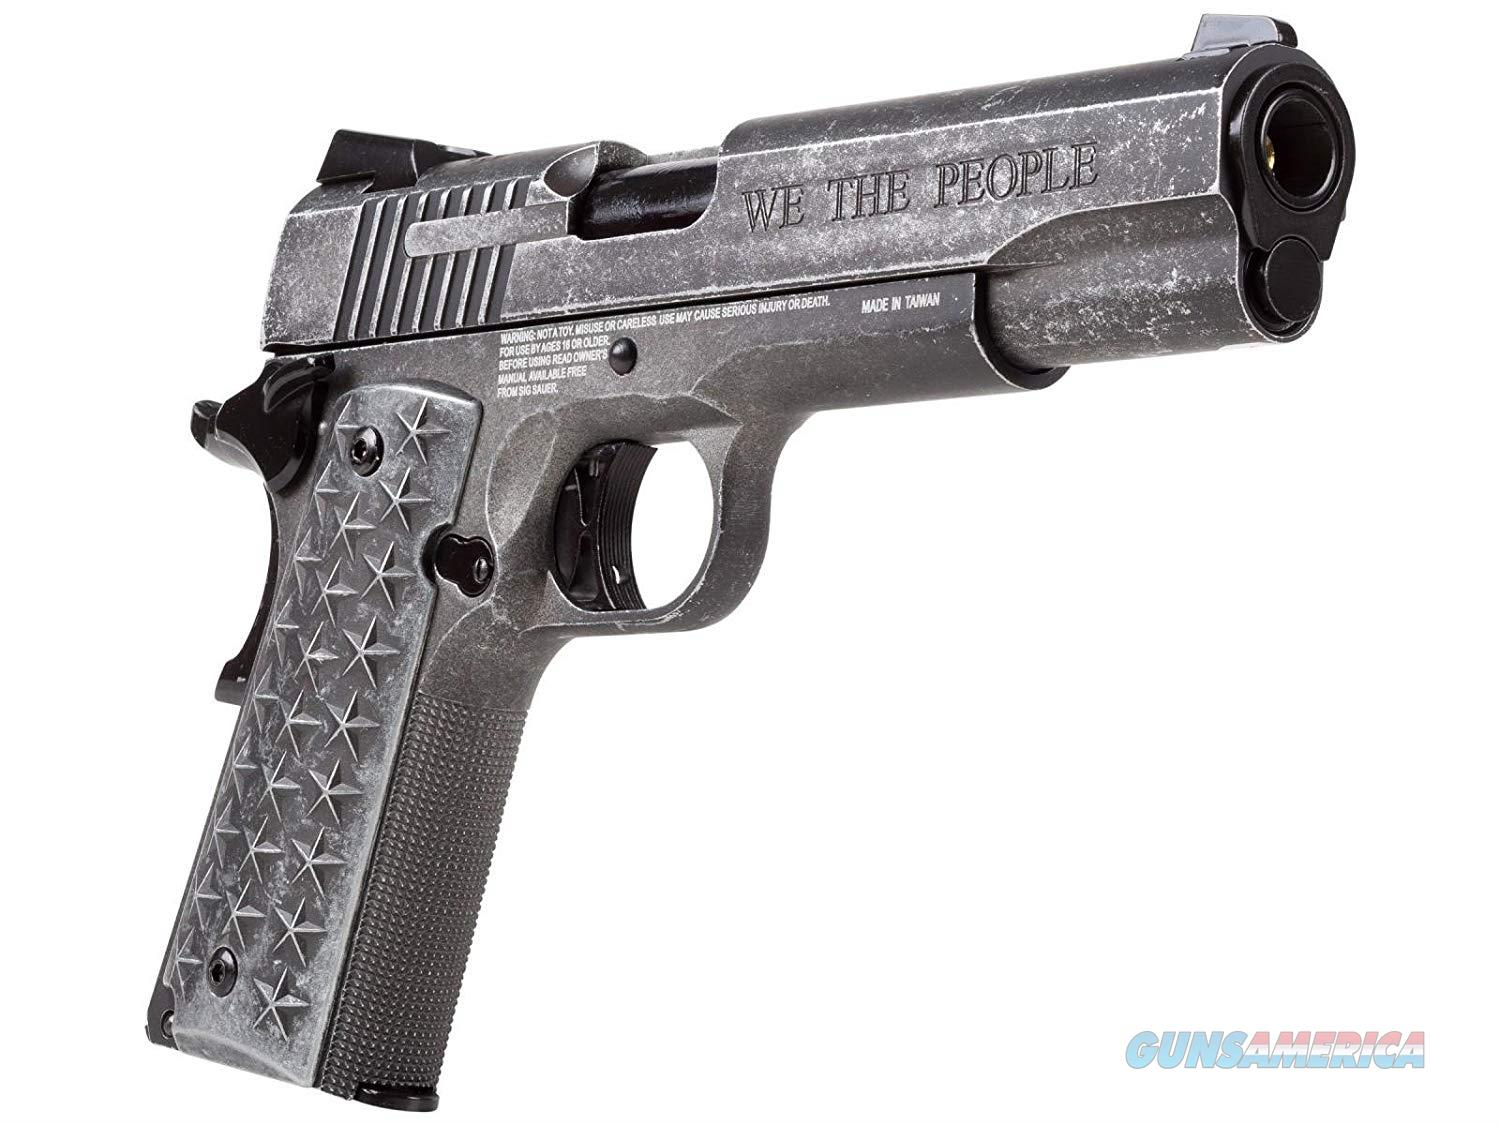 Sig Sauer 1911 We The People Air Pistol, .177 Cal, 17 Round  Non-Guns > Air Rifles - Pistols > Crossman Type Pump